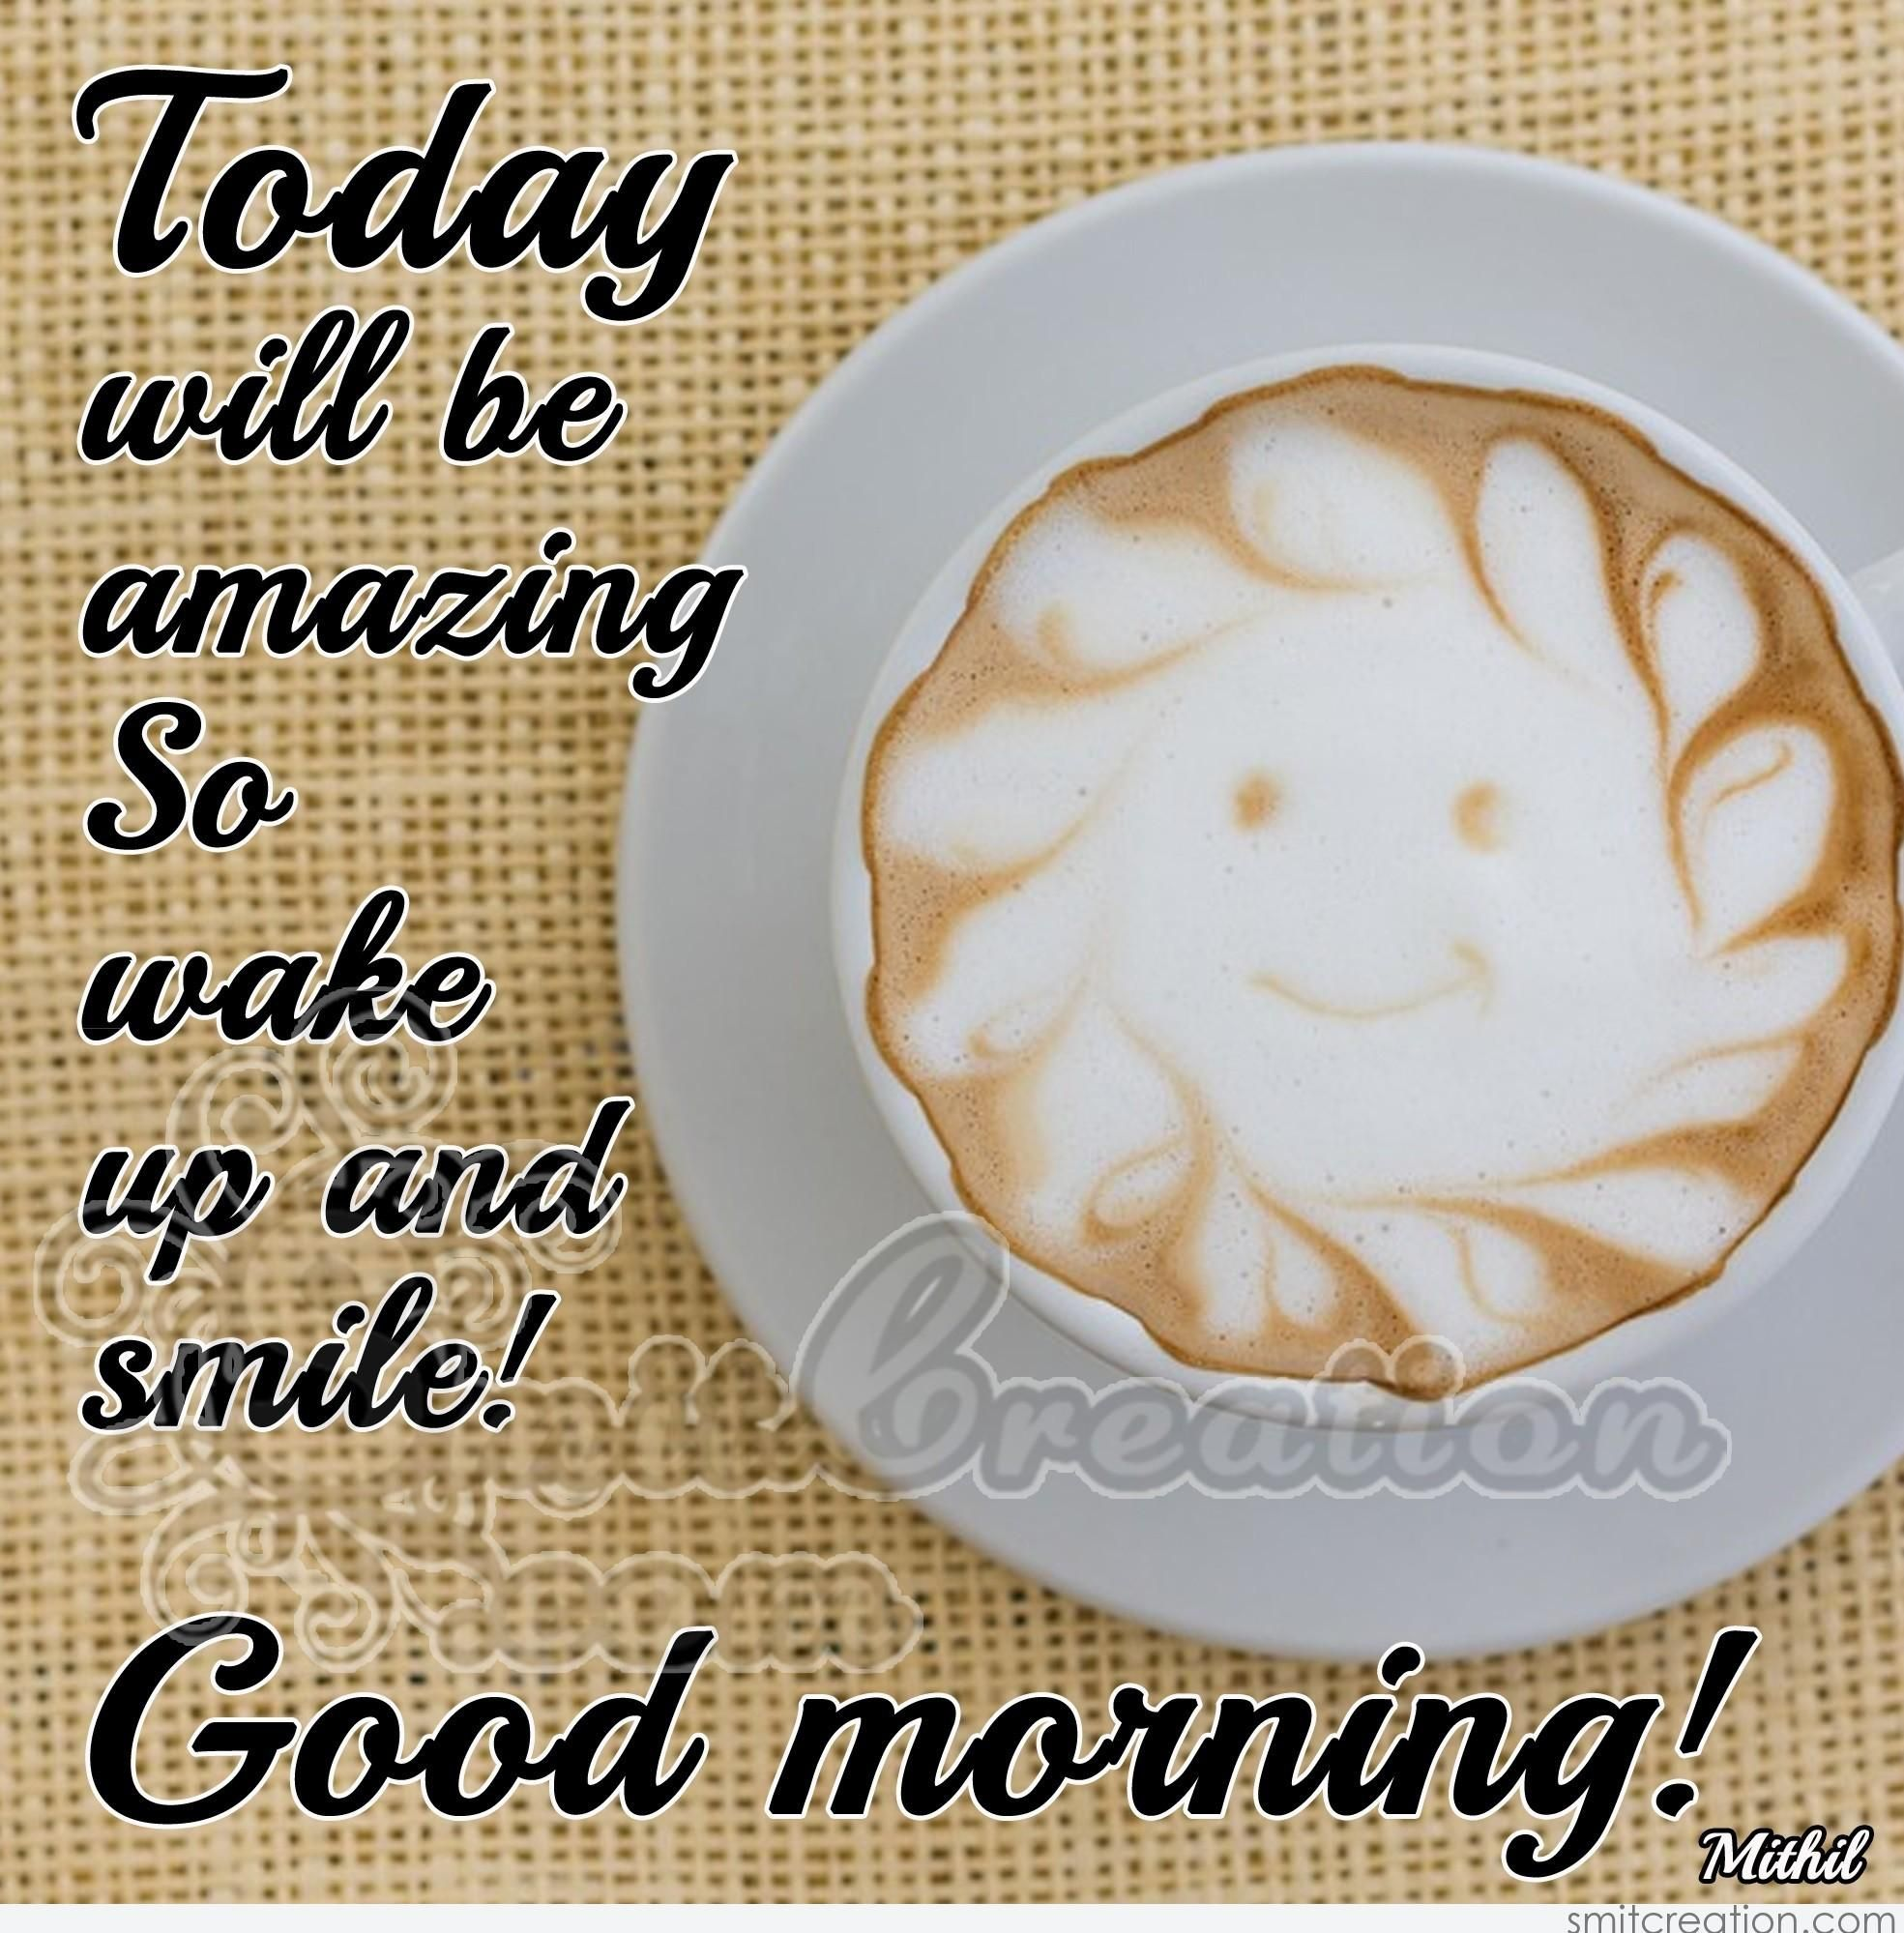 Good Morning Coffee Pictures And Graphics Smitcreation Com Good Morning Coffee Good Morning Coffee Images Coffee Quotes Morning